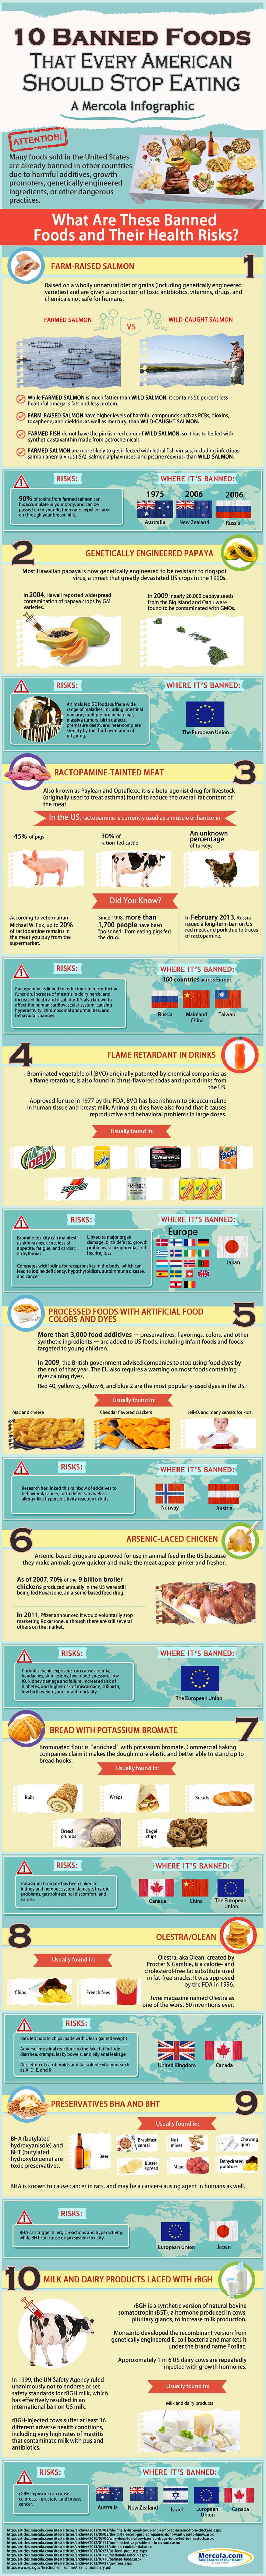 Banned foods infographic